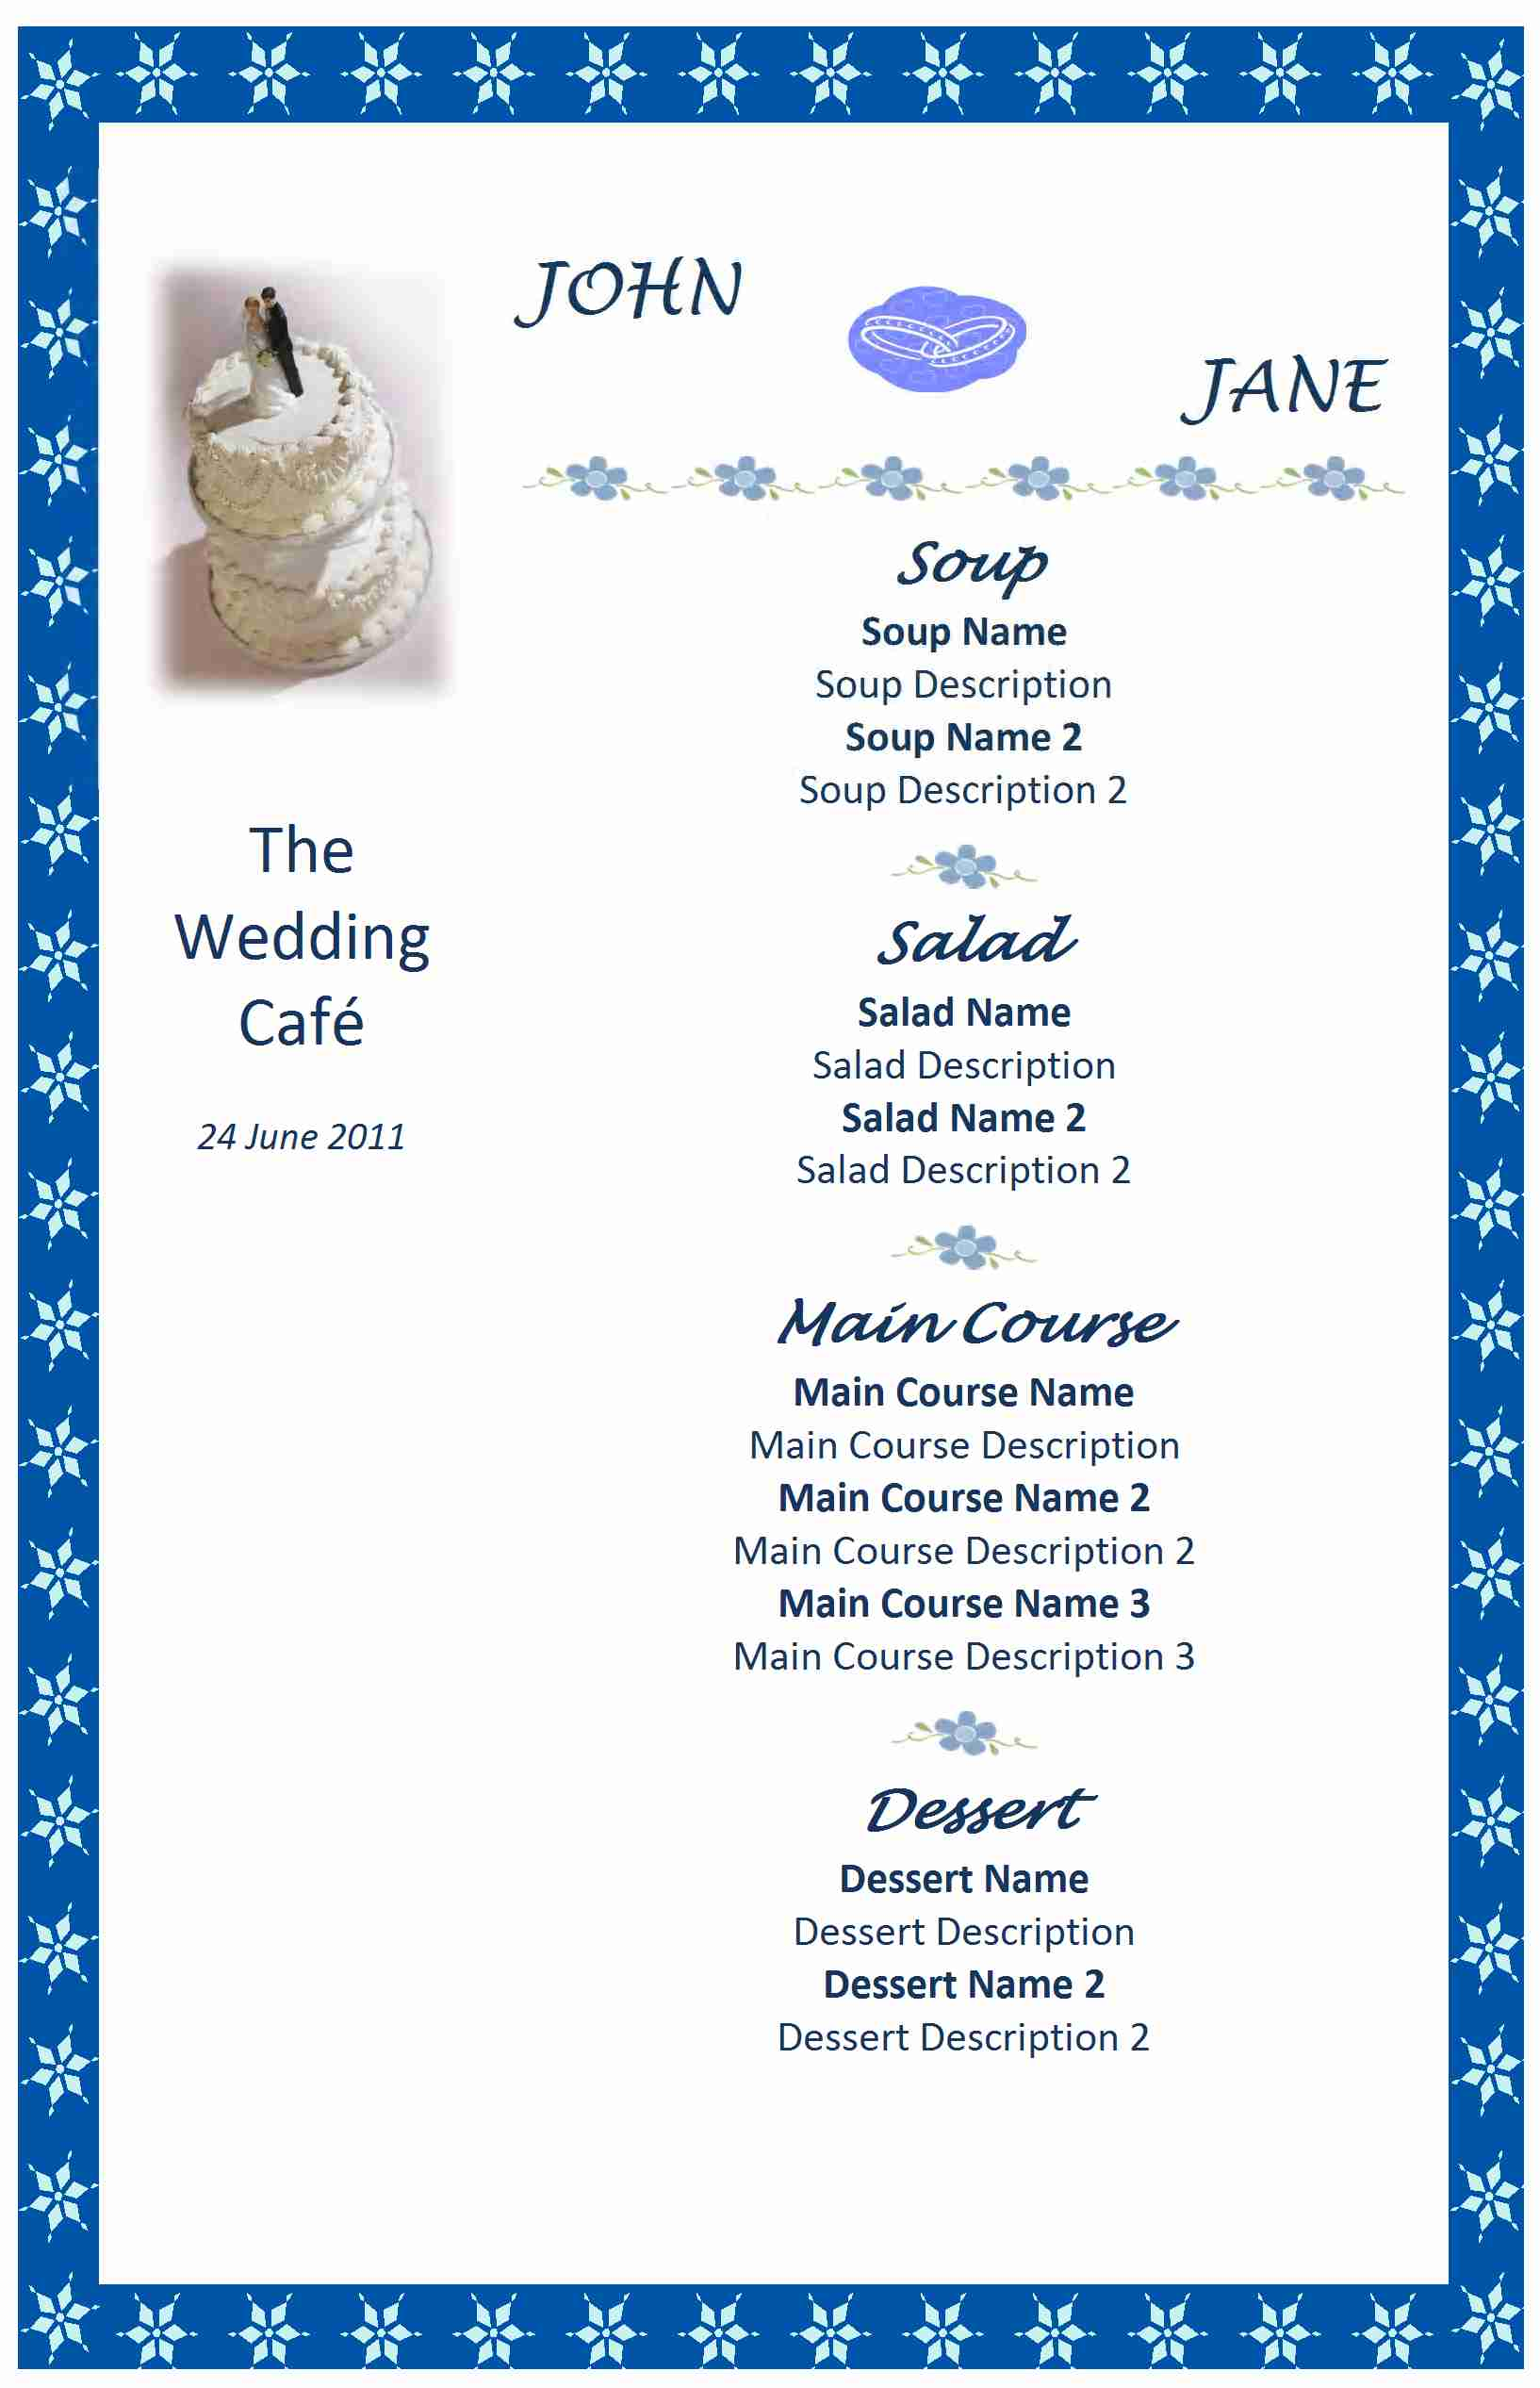 Wedding menu for Menu templates for weddings